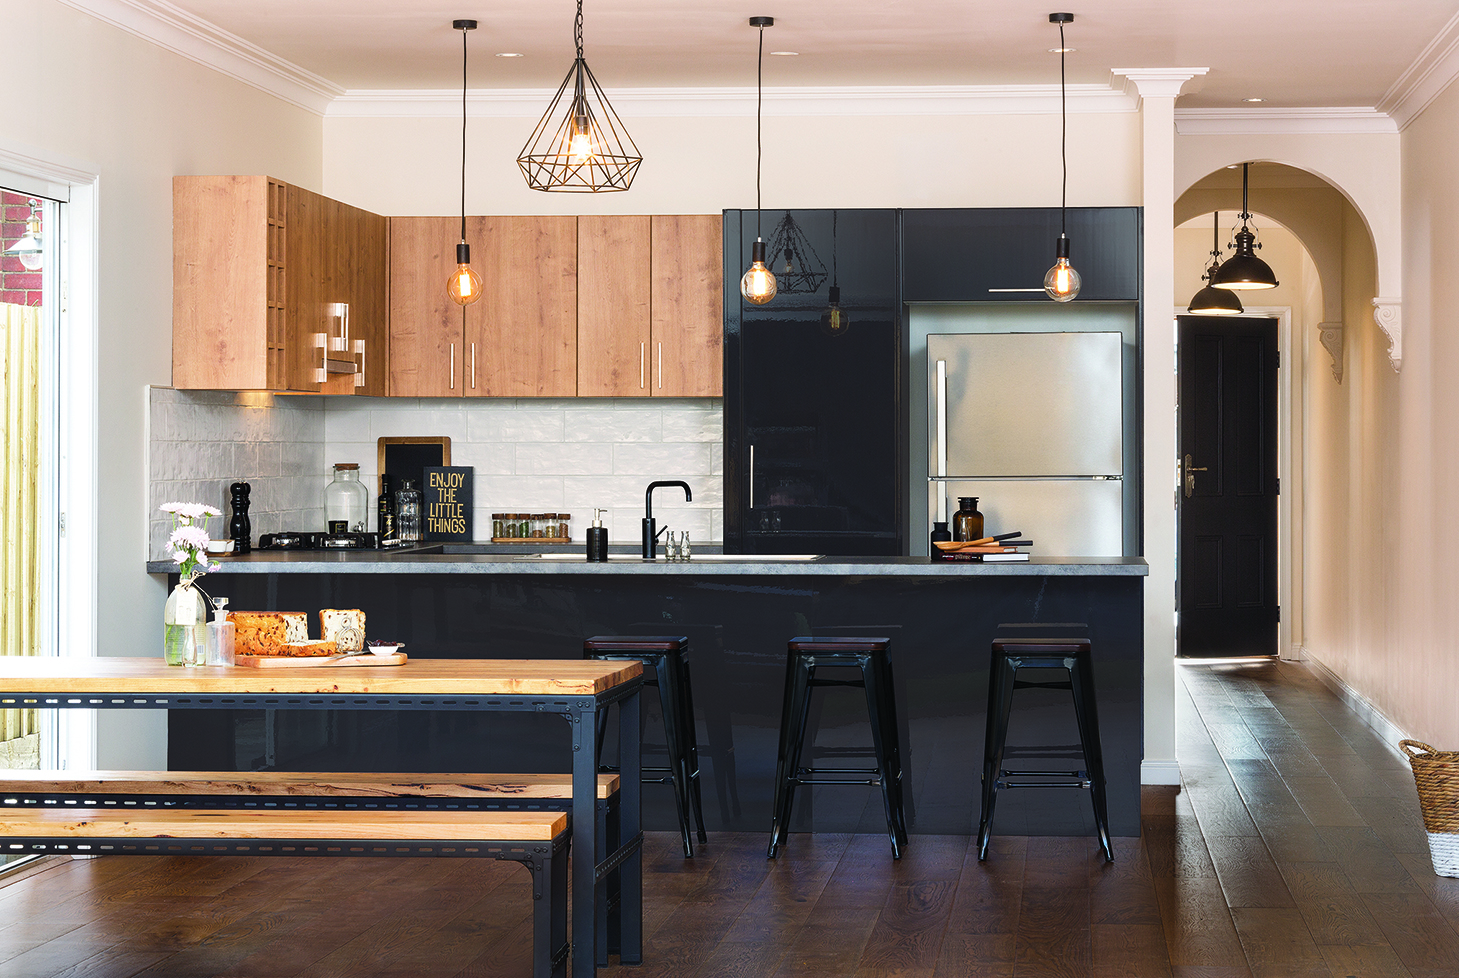 Rustic Elegance Kitchen Inspiration And Ideas Kaboodle